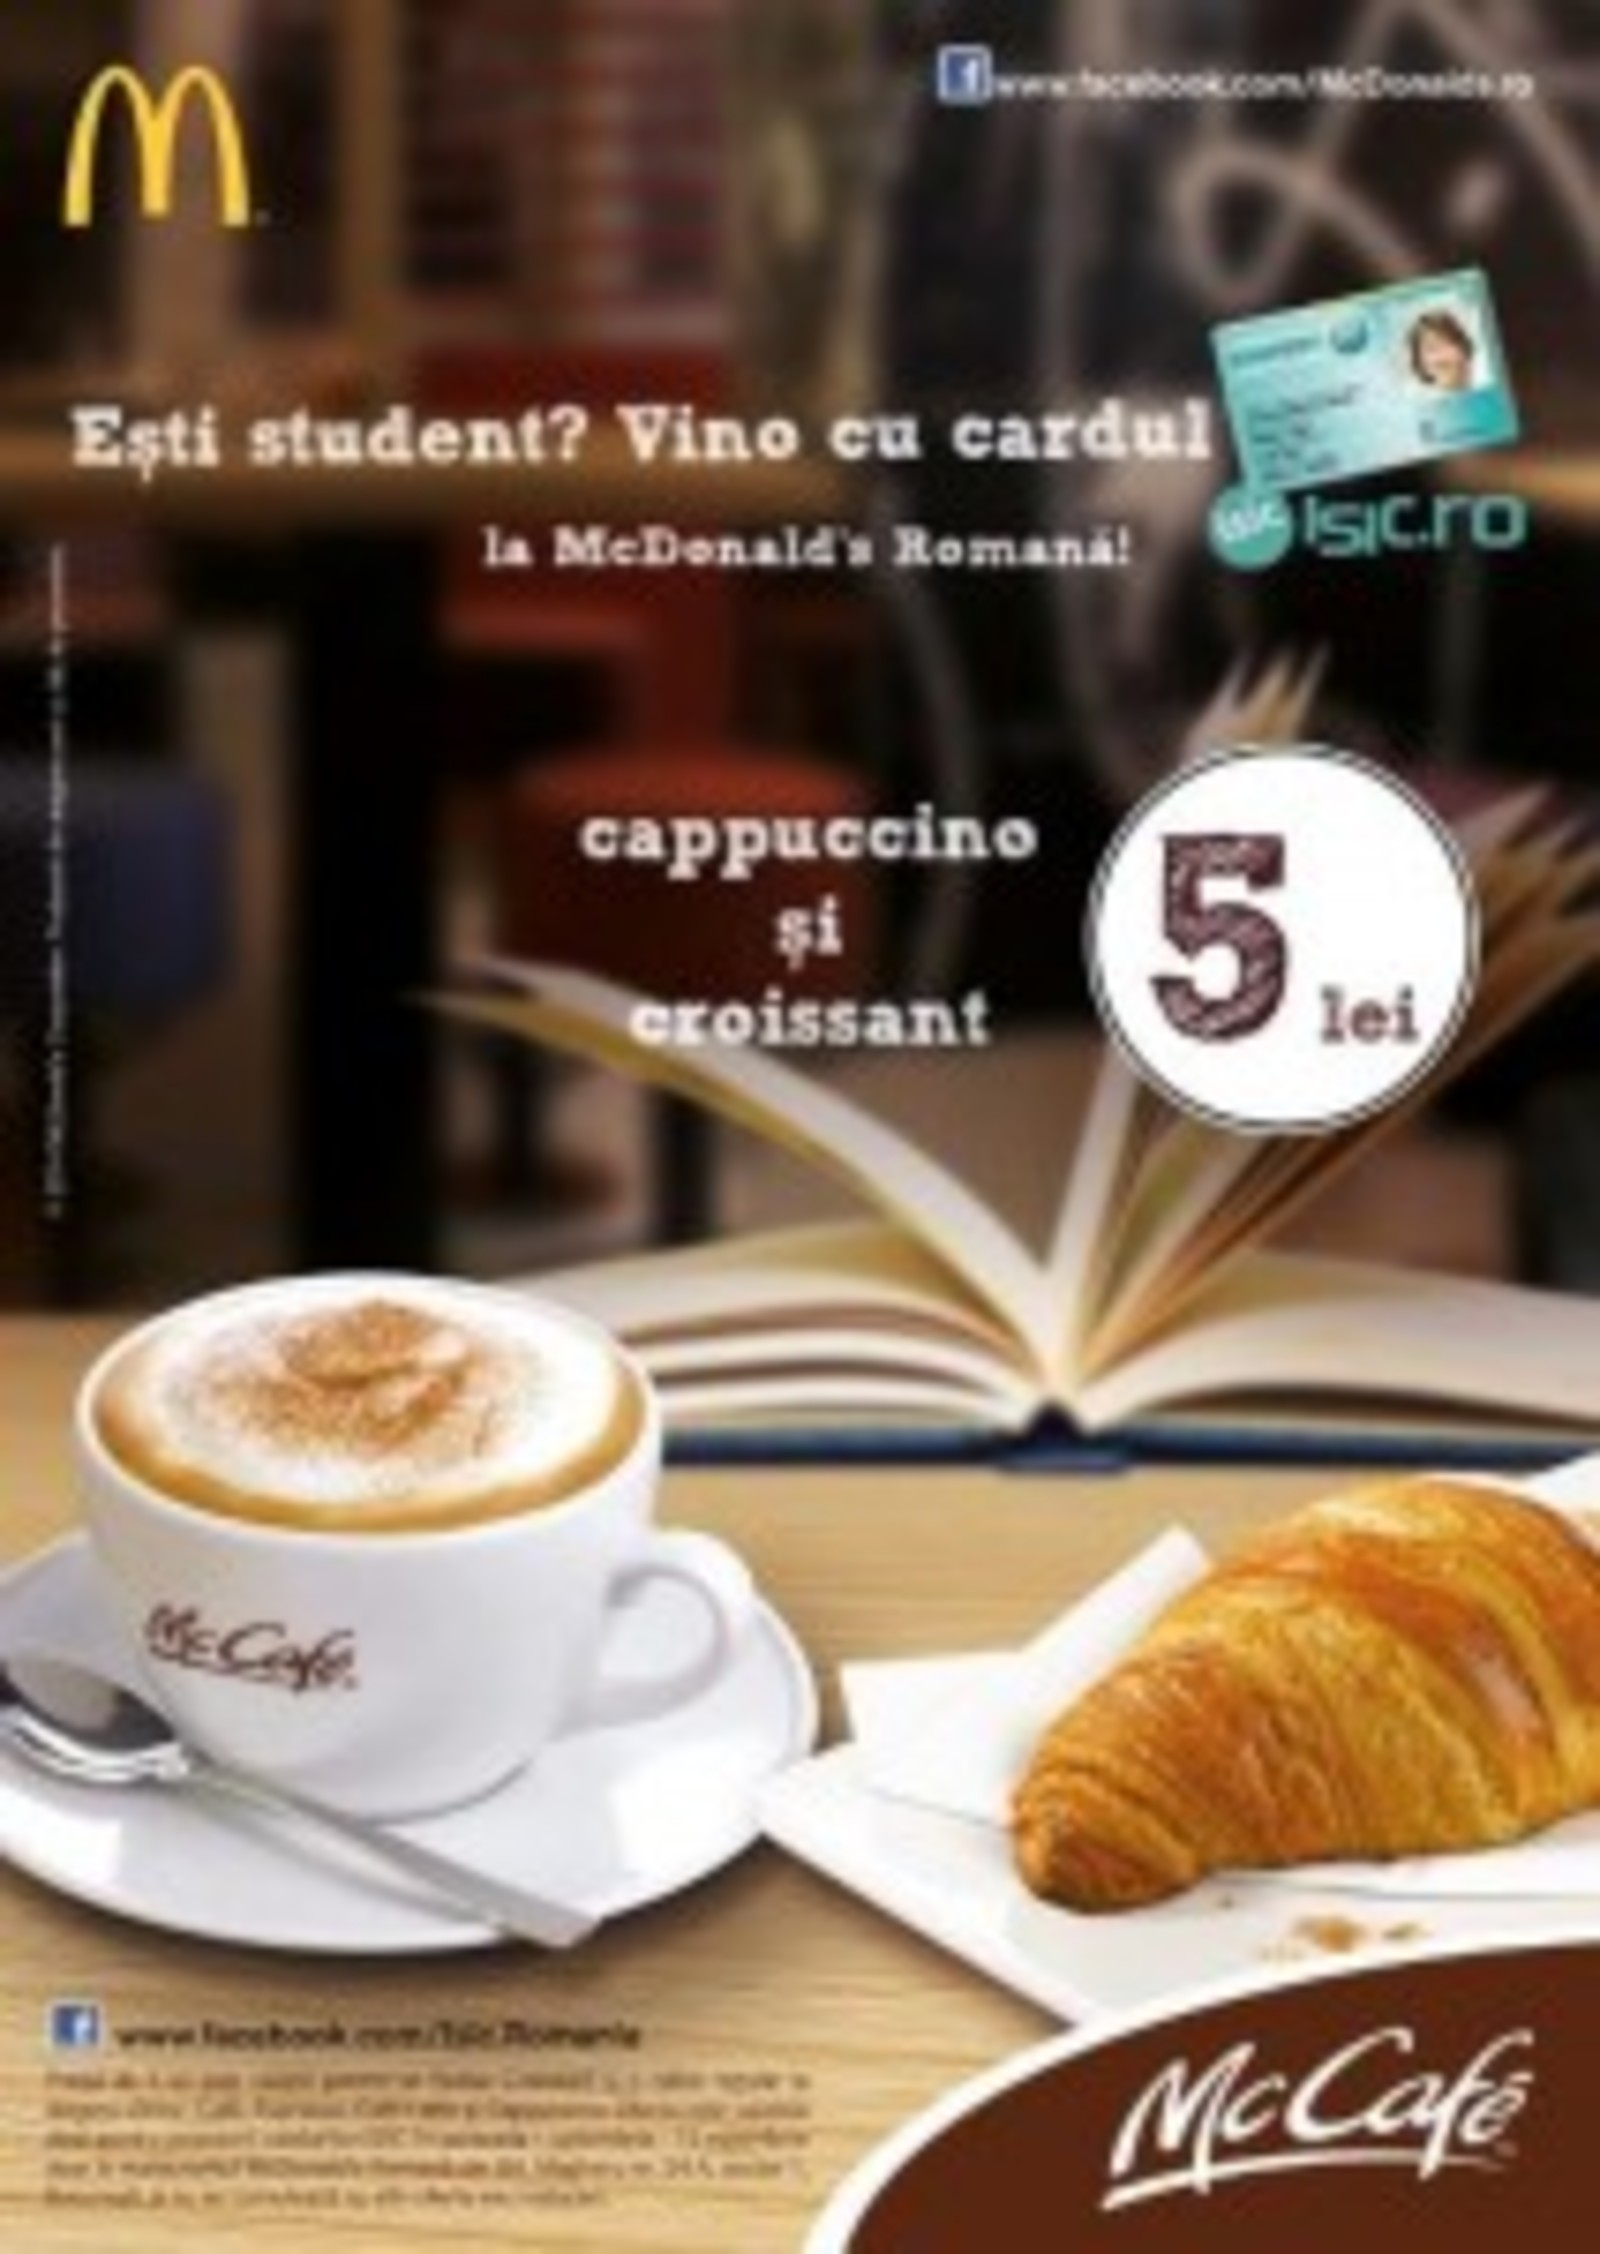 MCD-0914-croissant-capuccino- studenti-LEAFLET-A6 (3)